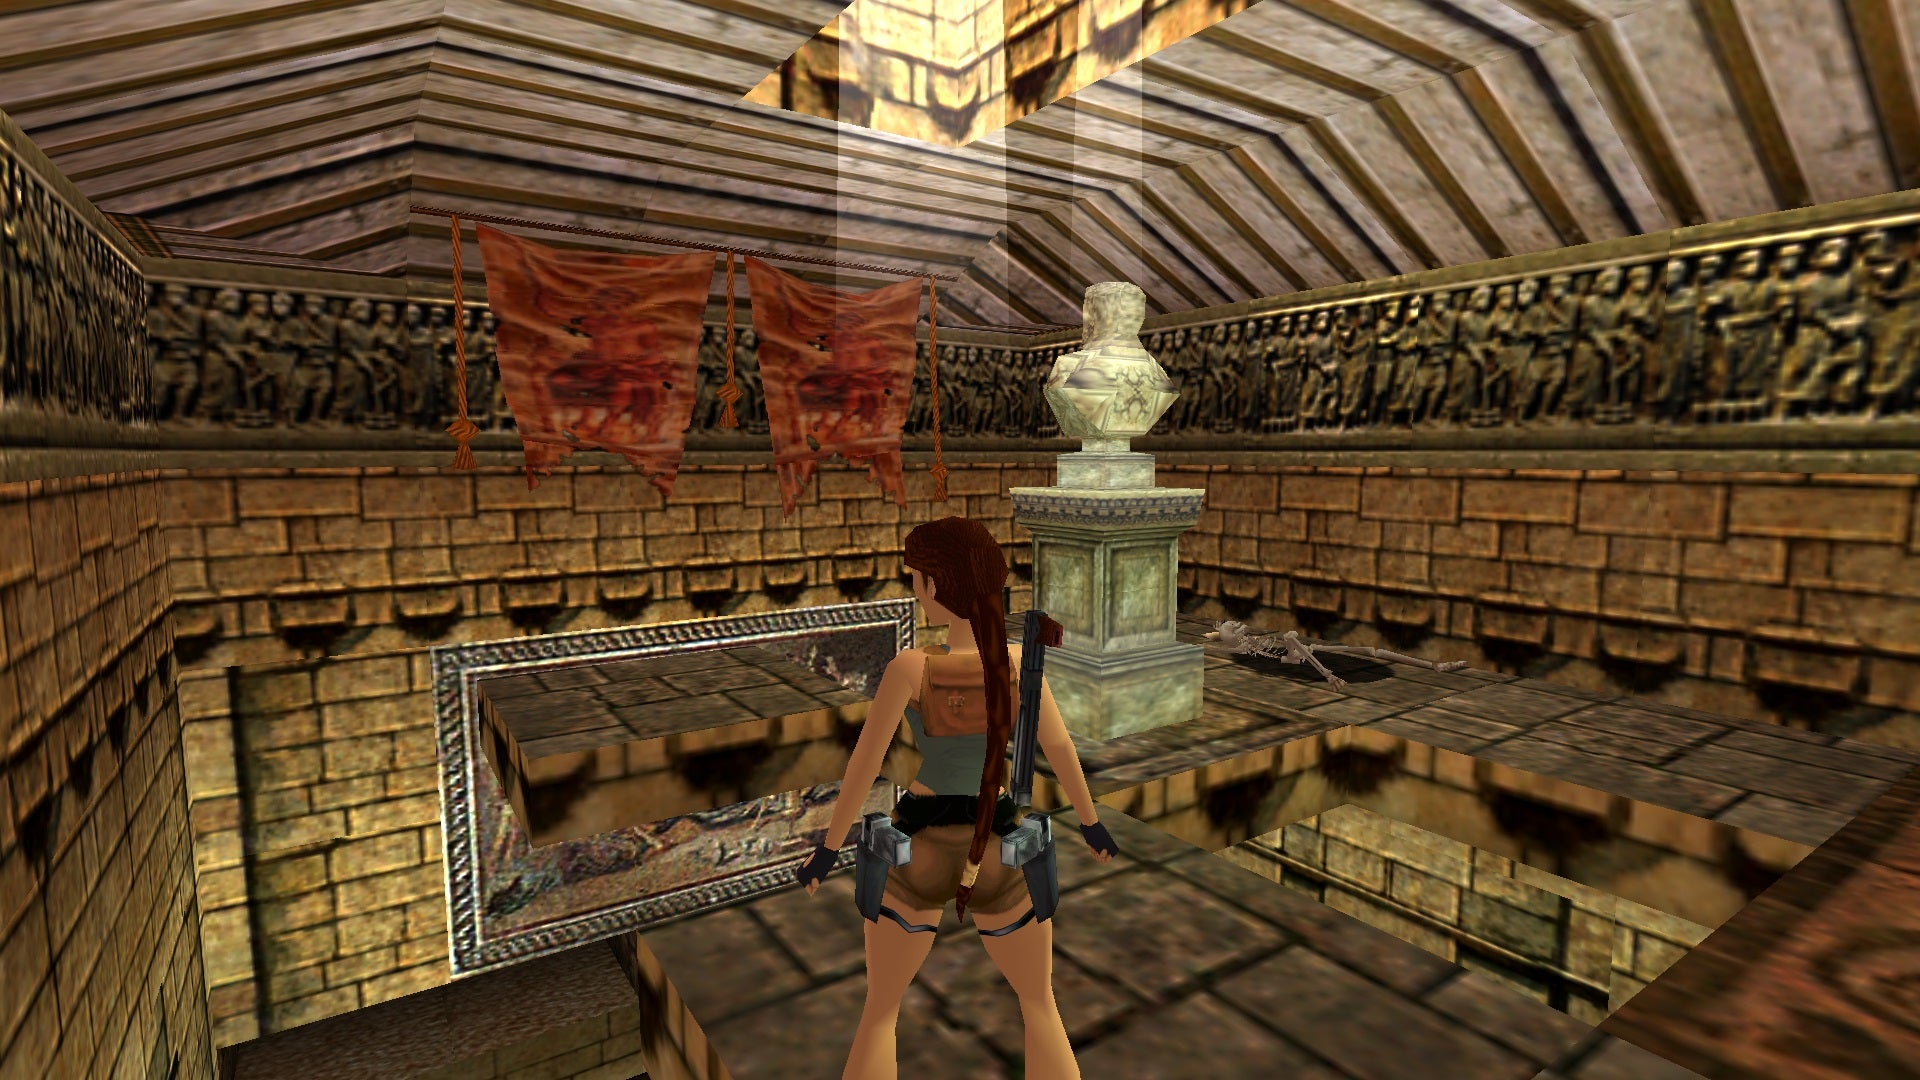 A screenshot from the Tomb Raider custom level called The Colosseum